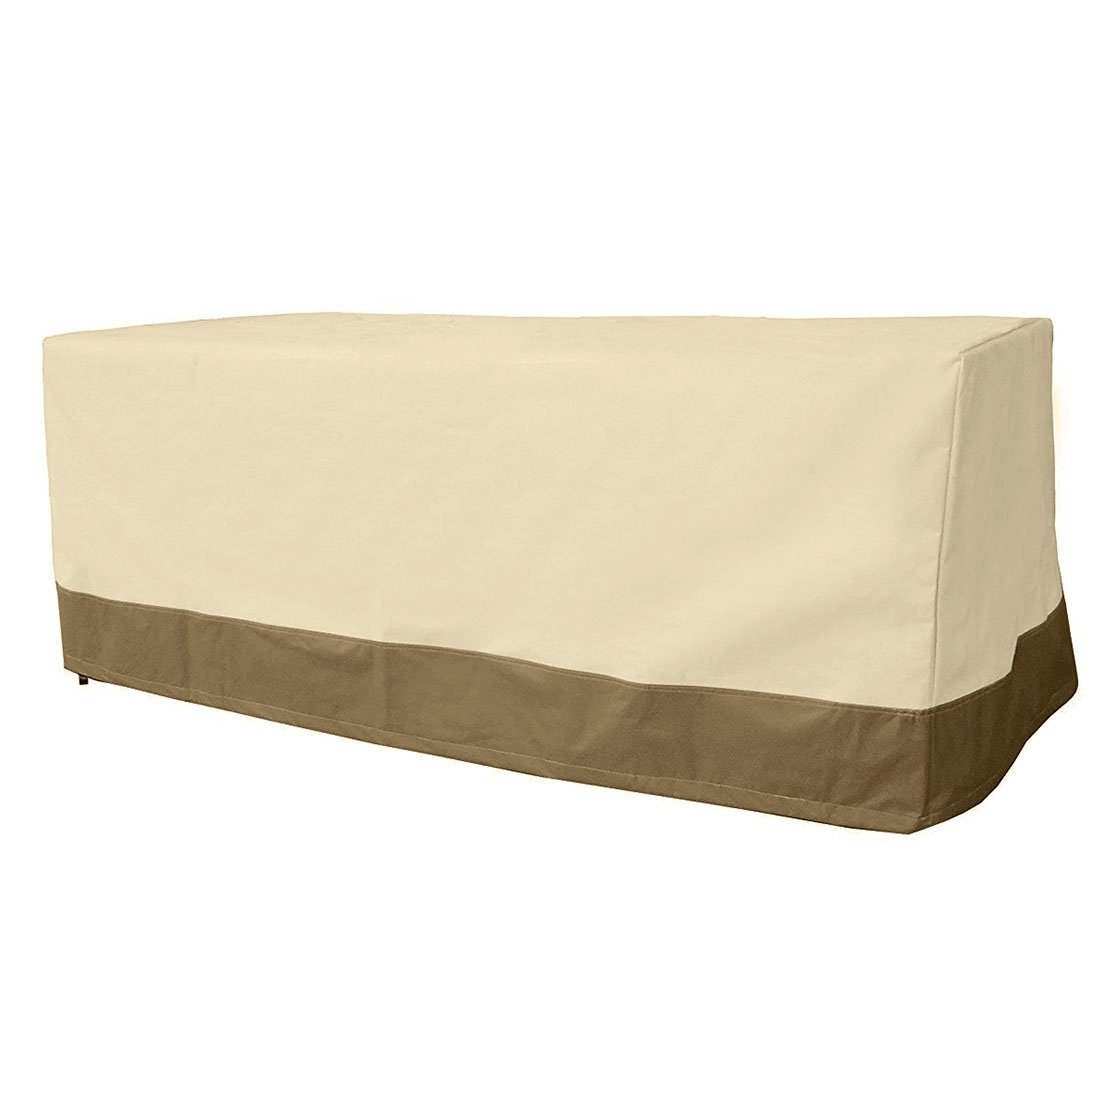 Vanteriam Outdoor Rectangular/Oval Patio Dining Table Cover-Waterproof Large Outdoor Patio Furniture Cover for Dining Table by Vanteriam